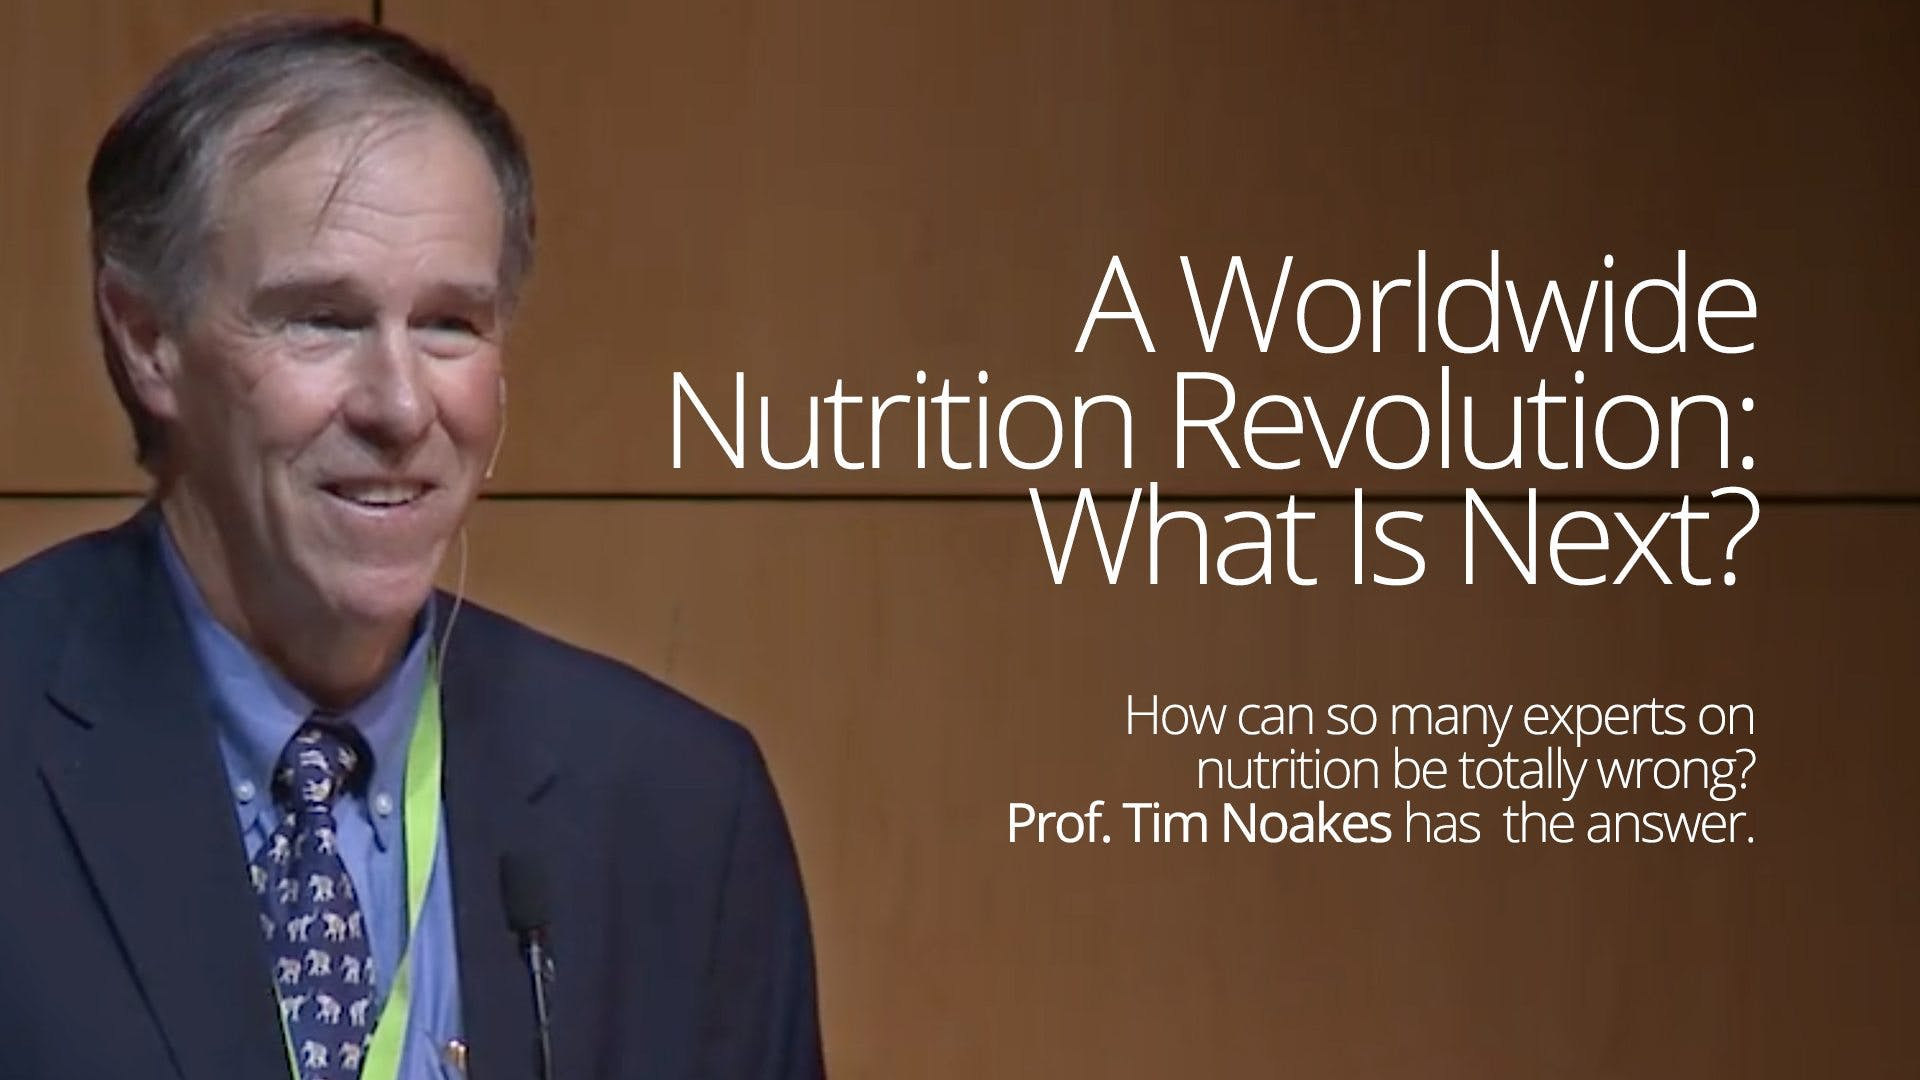 A Worldwide Nutrition Revolution – Prof. Tim Noakes